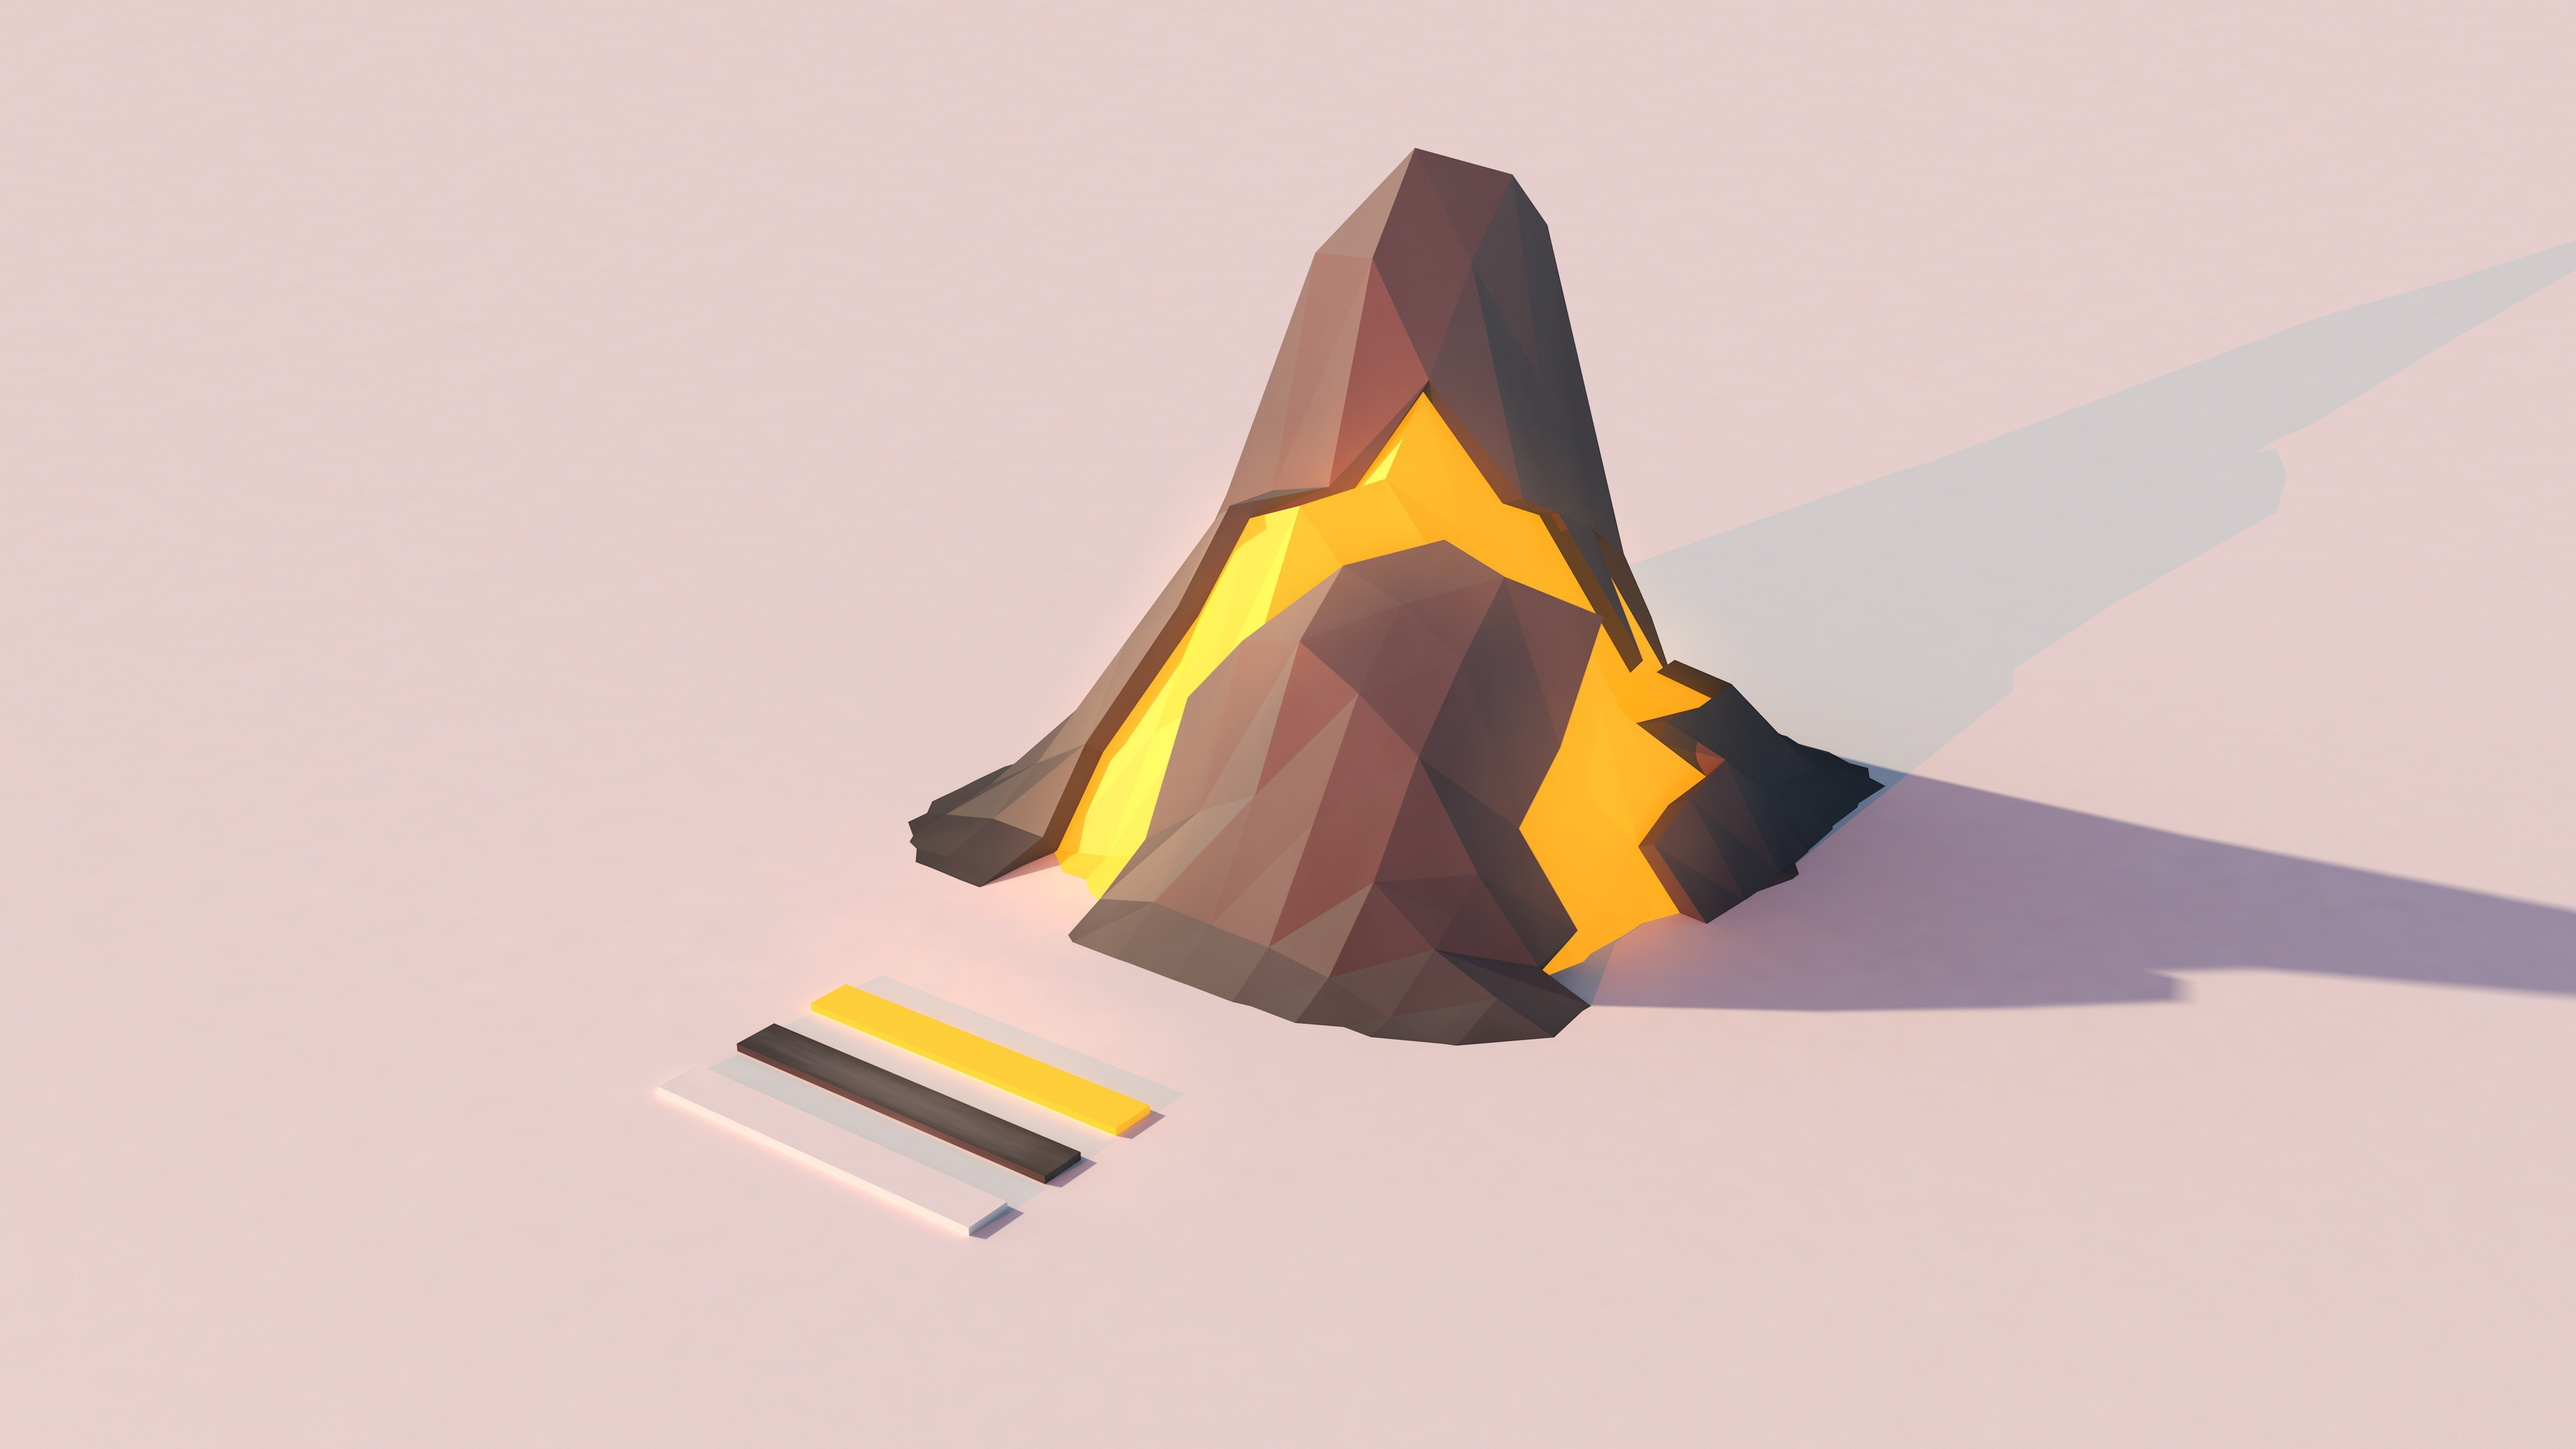 Volcano lowpoly wallpaper